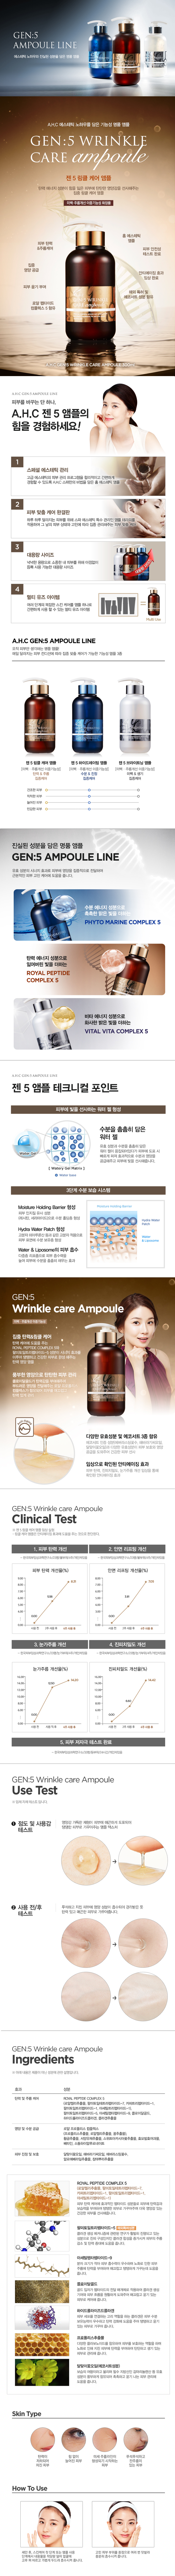 AHC Gen 5 Wrinkle Care Ampoule 300ml malaysia singapore indonesia